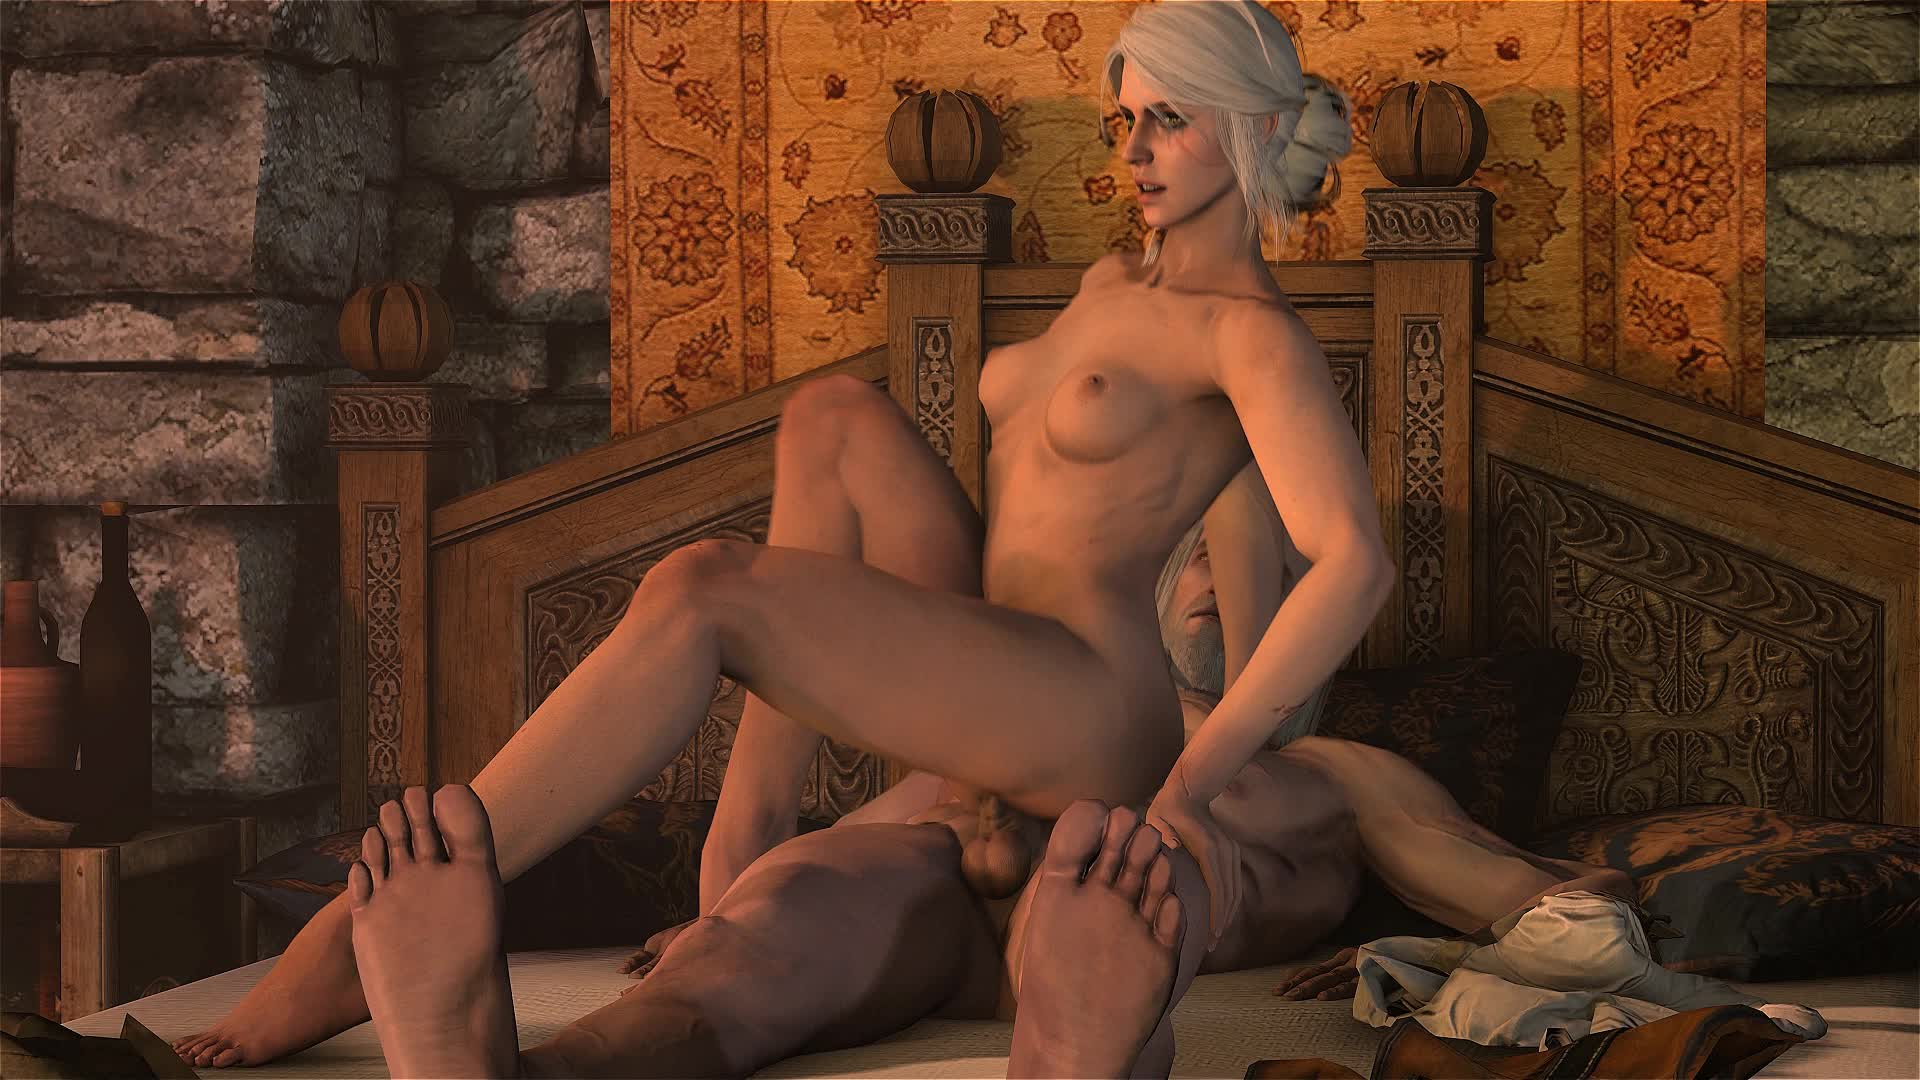 3D Animated Ciri Geralt_of_Rivia Hunt Sound The_Witcher The_Witcher_3:_Wild santalolno // 1x1 // 6.3MB // webm